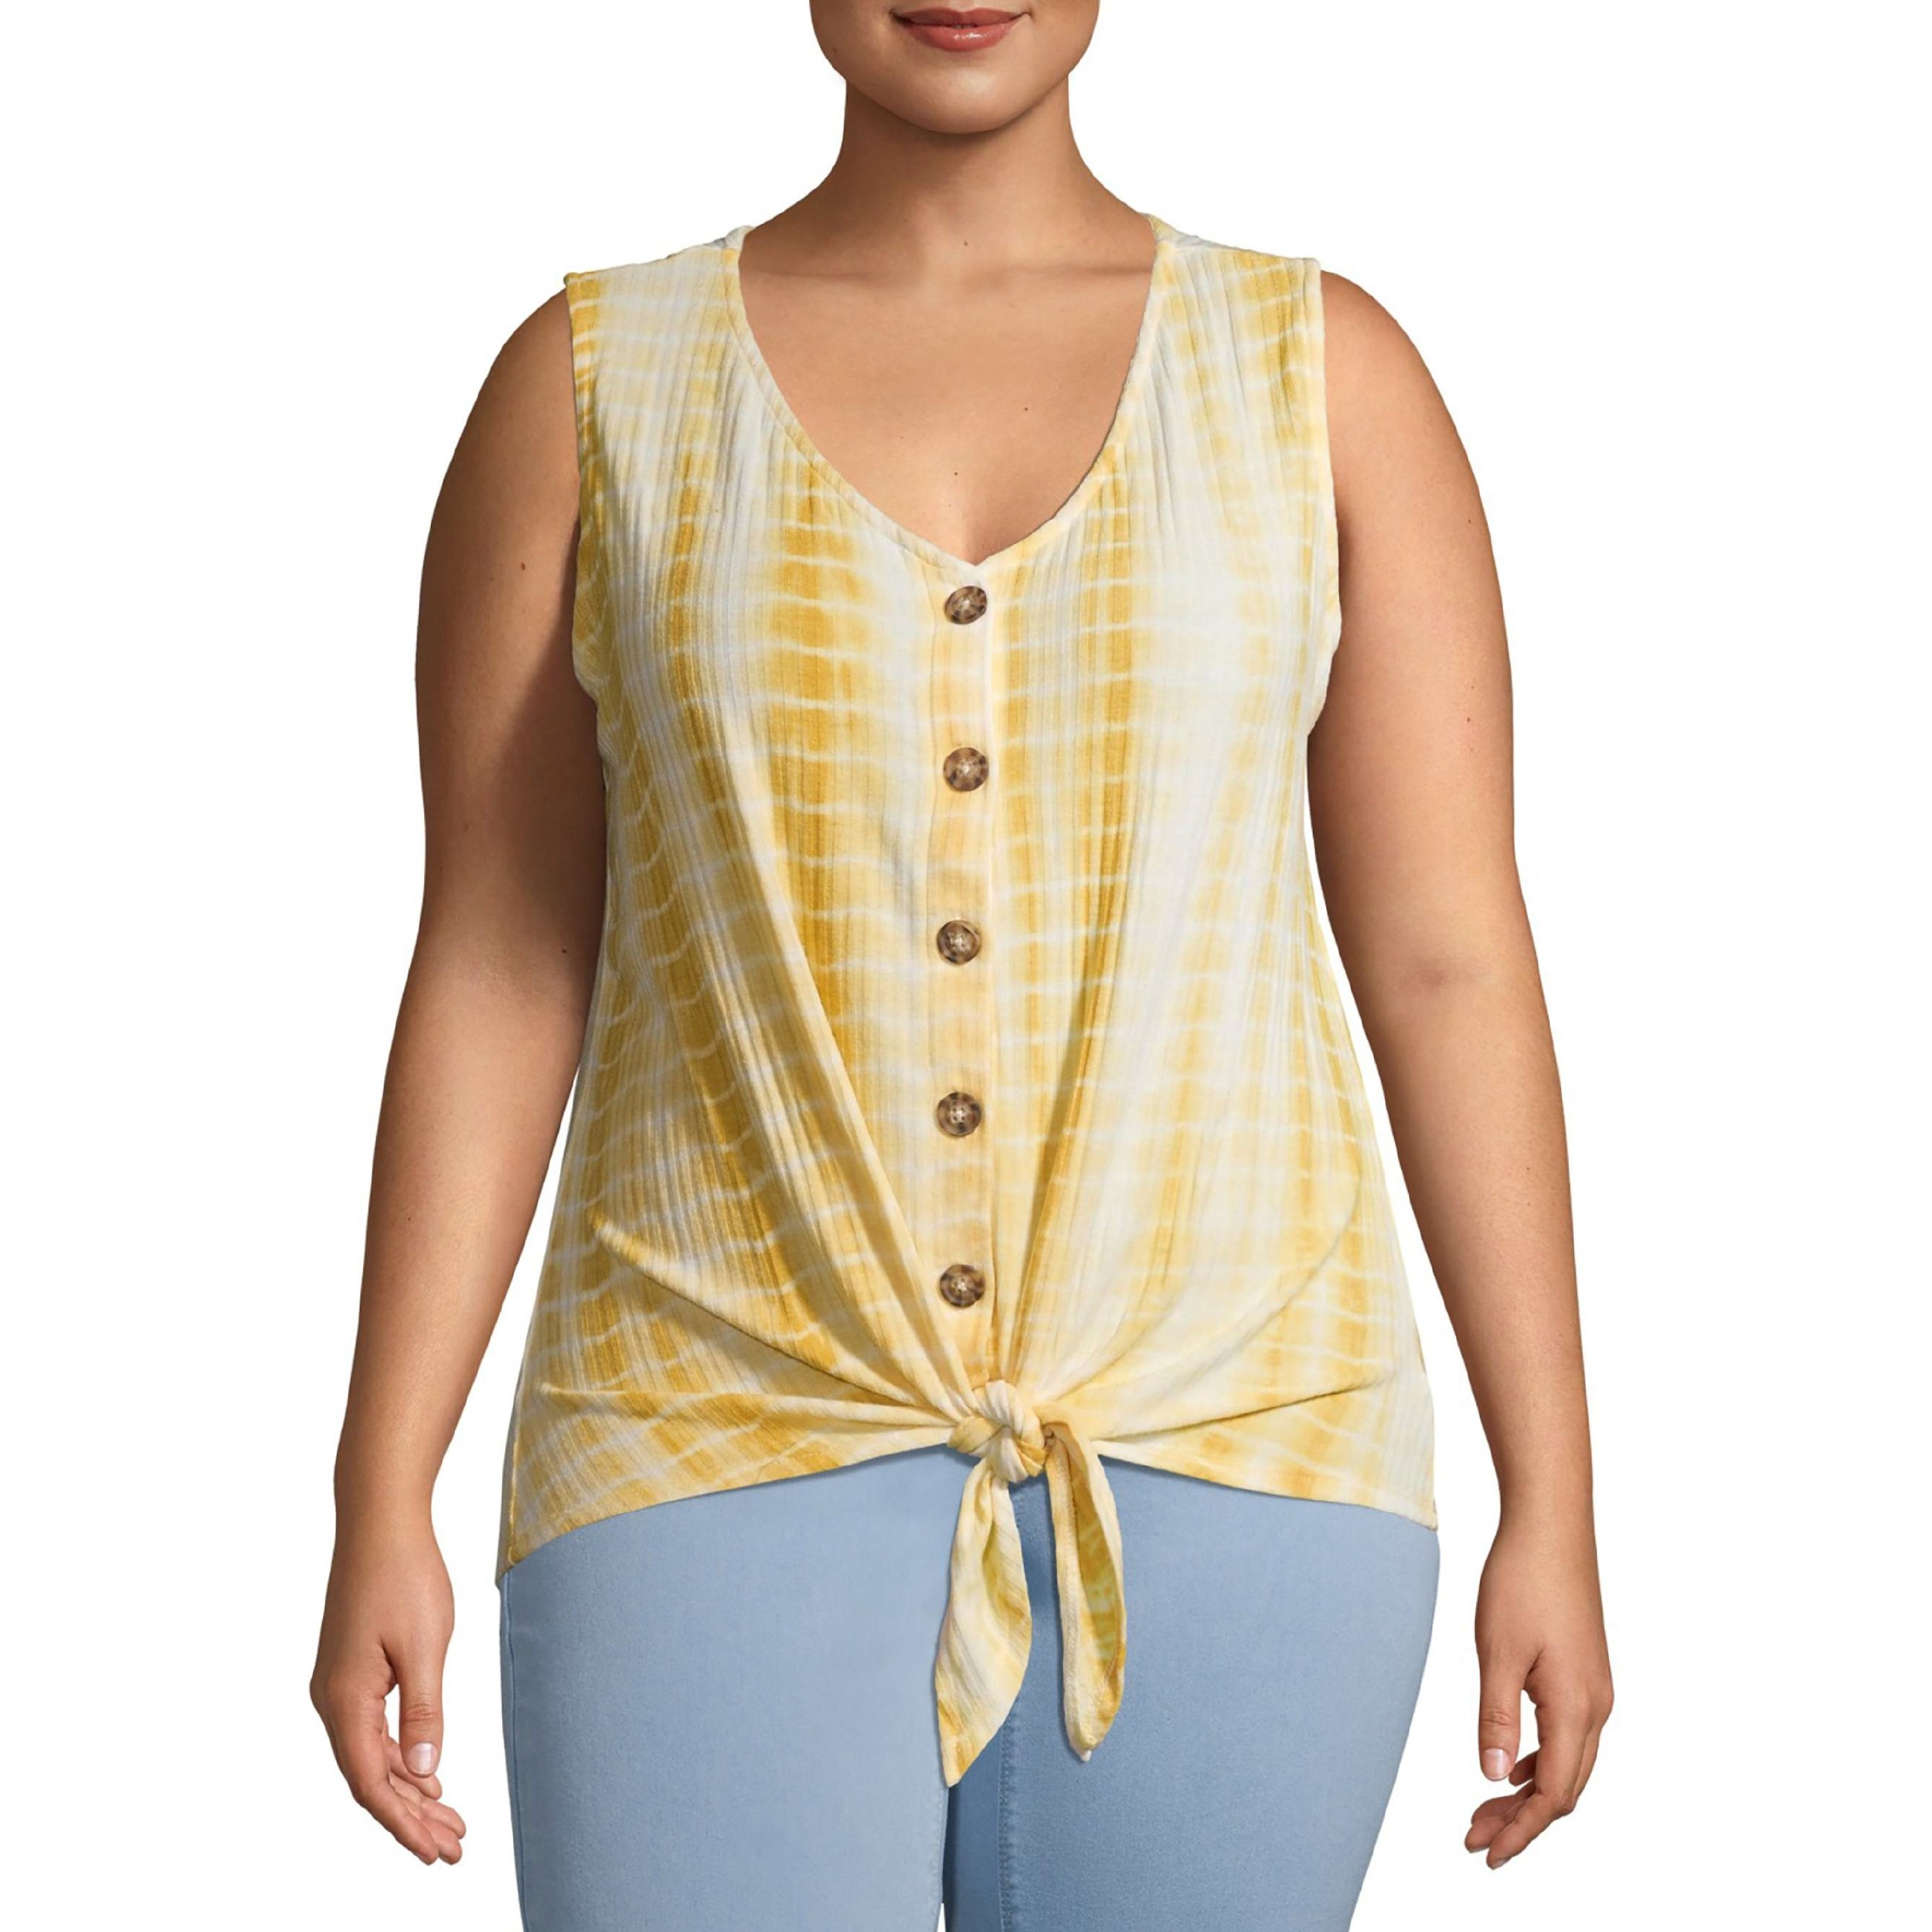 The yellow front-tie button-down top